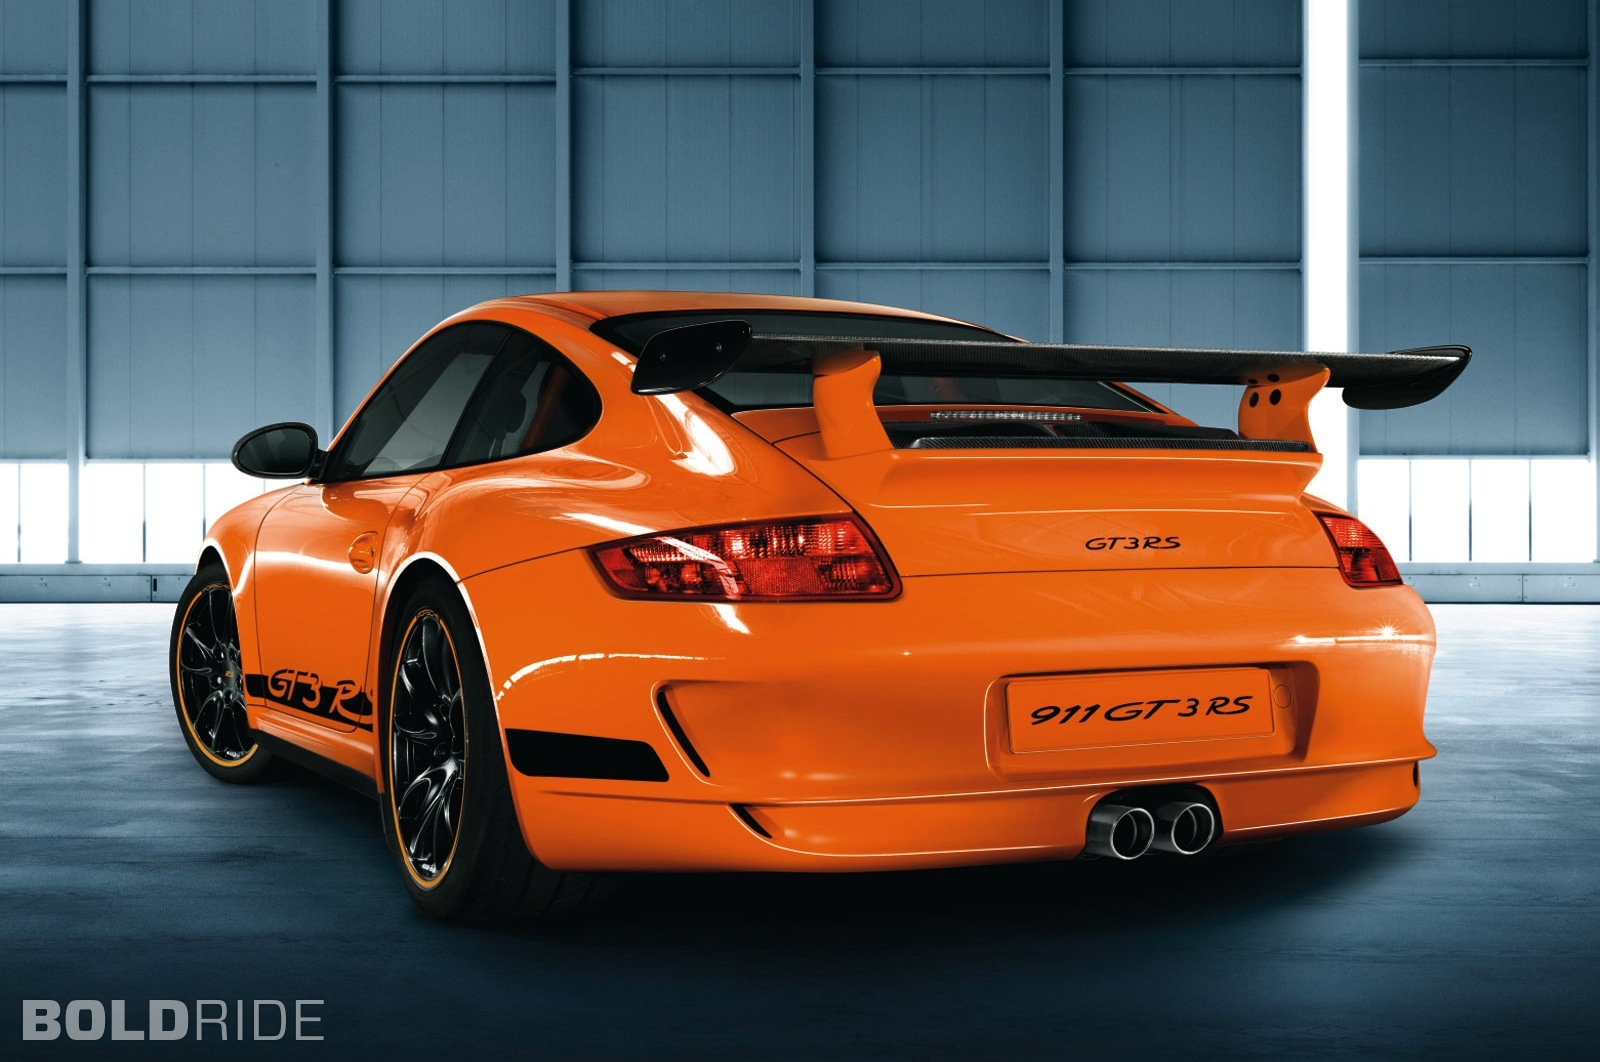 2010 porsche 911 gt3 rs supercar r s yt wallpaper. Black Bedroom Furniture Sets. Home Design Ideas